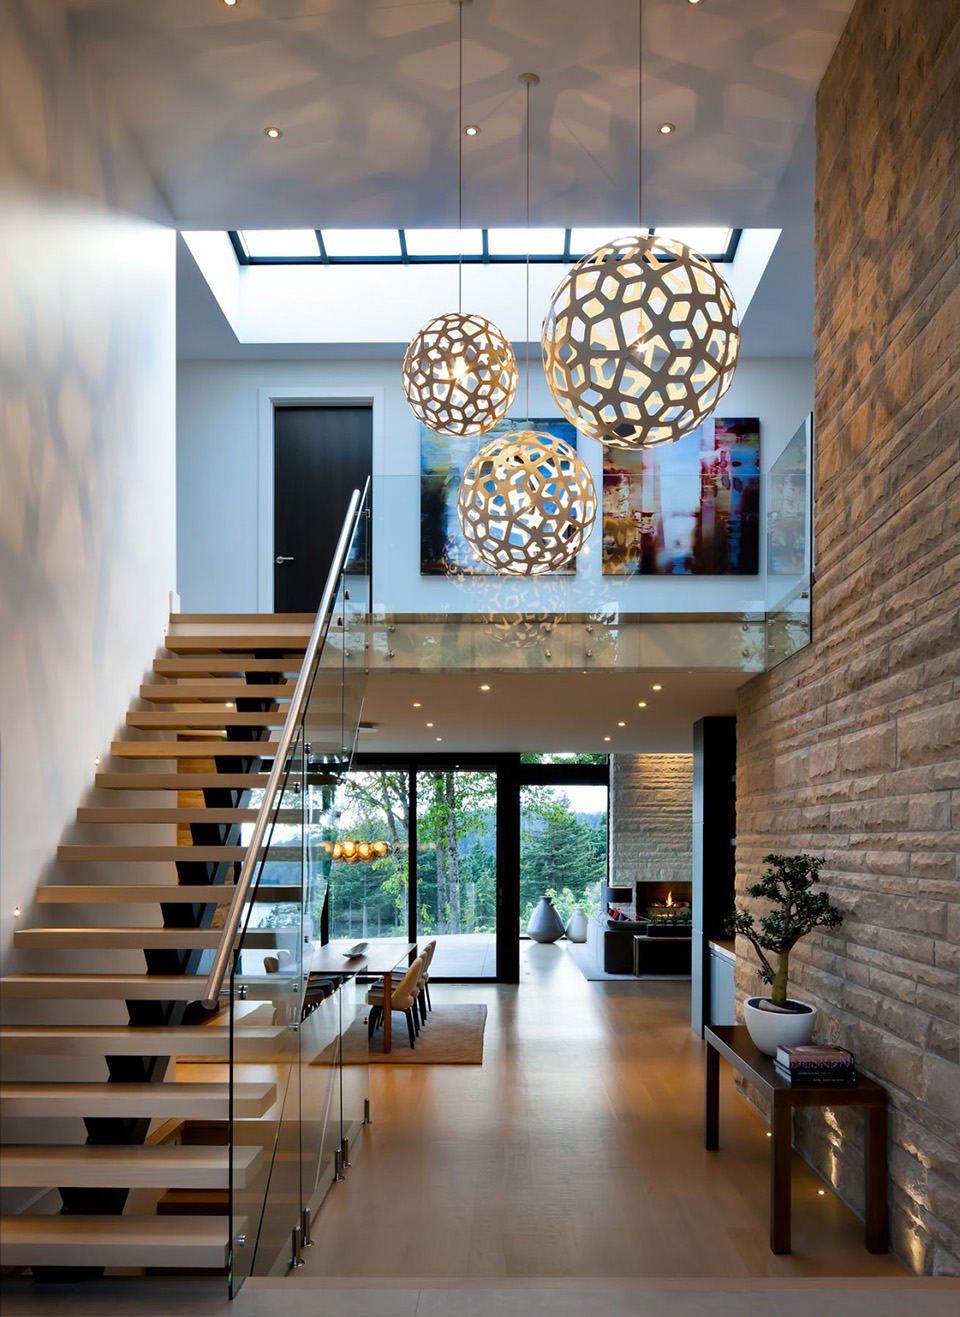 Burkehill Residence by Craig Chevalier and Raven Inside Interior Design 2